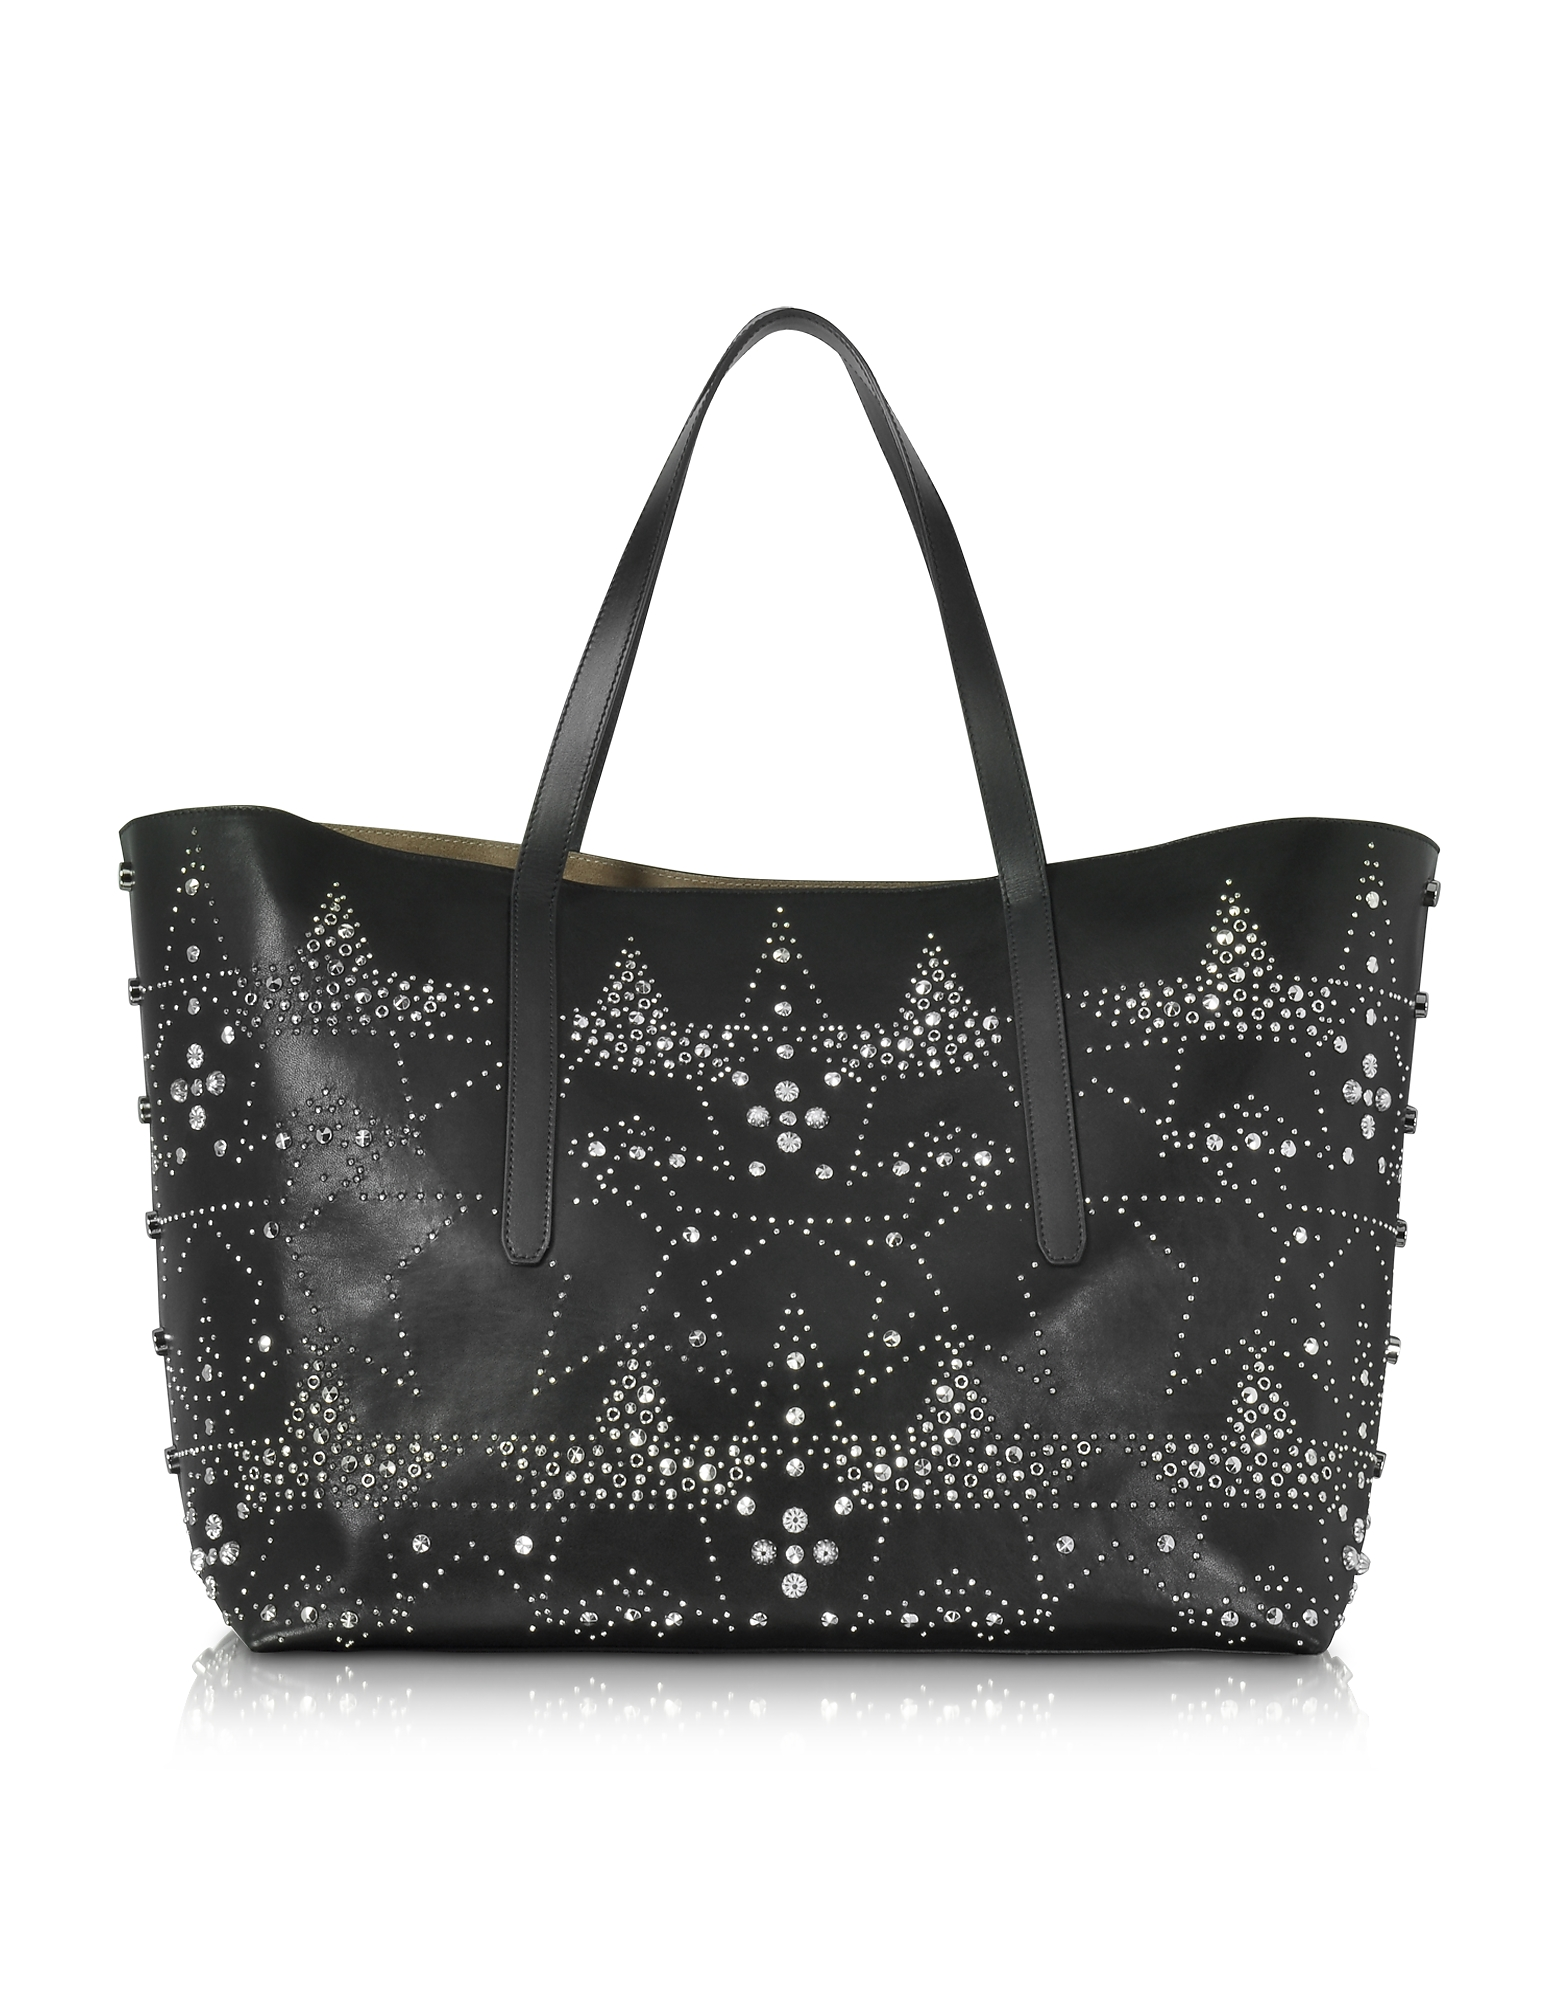 Jimmy Choo Handbags, Pimlico Rock Black Leather Large Tote w/Graphic Star Studded Embellishment